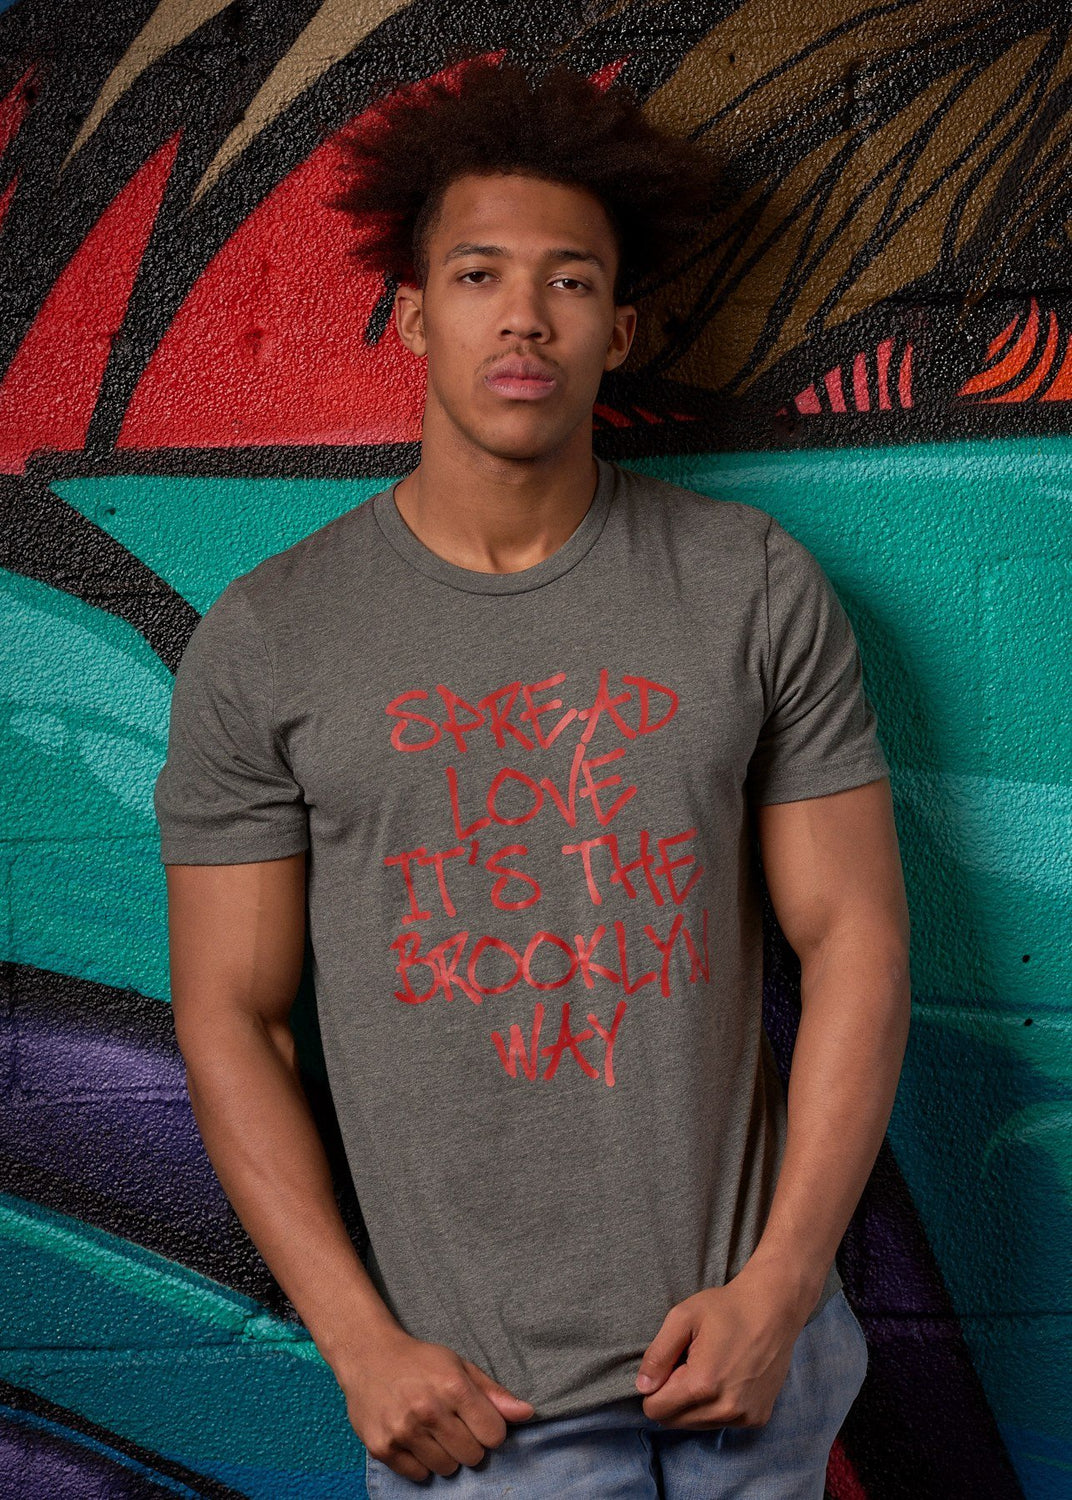 Spread Love ... It's the Brooklyn Way Tee - Simple Stature